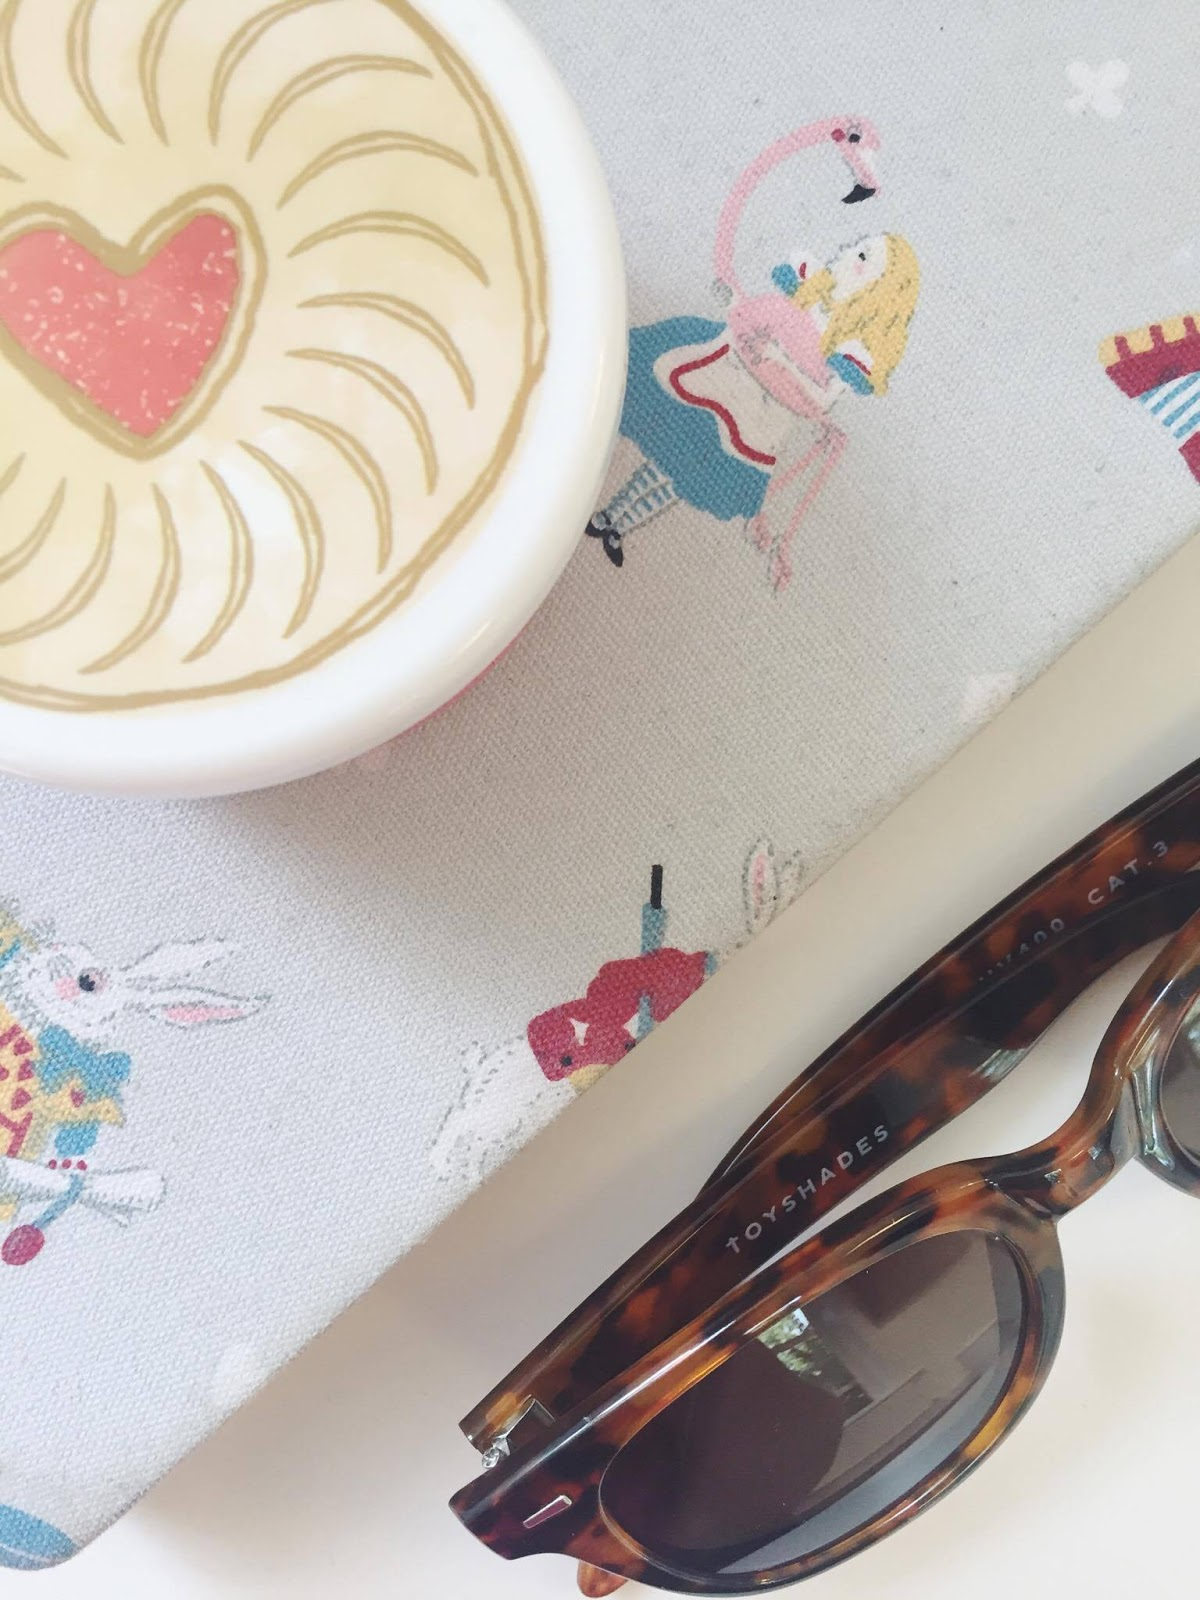 Biscuit-Tub-Notebook-Sunglasses